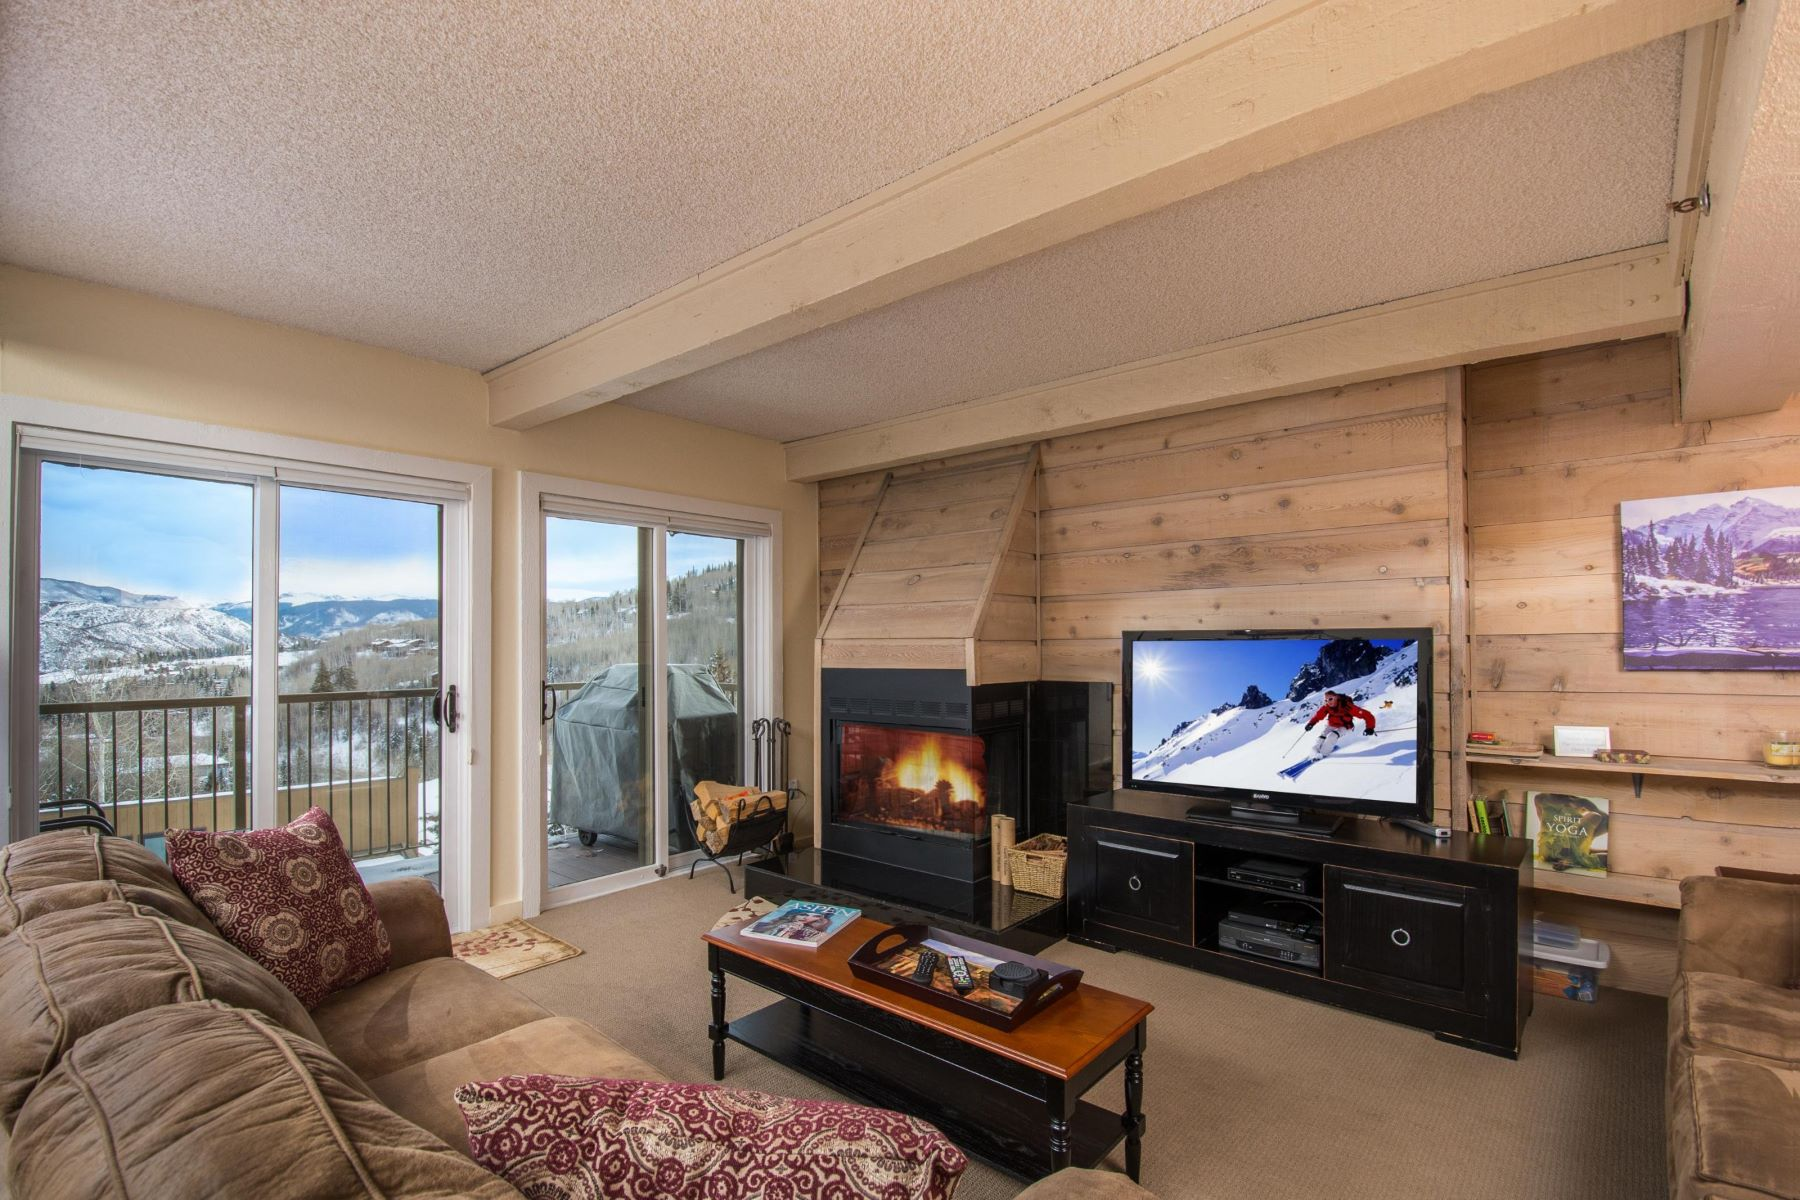 Condominium for Sale at Snowmass Mountain Condominium 55 Upper Woodbridge Road, Unit J-4 Snowmass Village, Colorado, 81615 United States